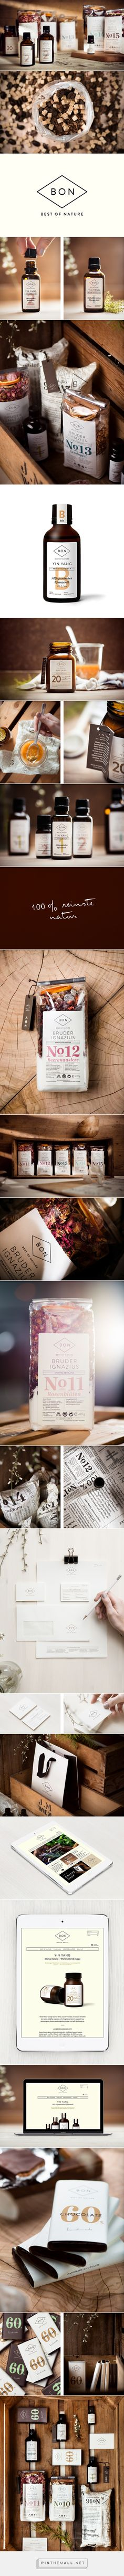 Best of Nature – Branding, Packaging, Web Design By moodley brand identity